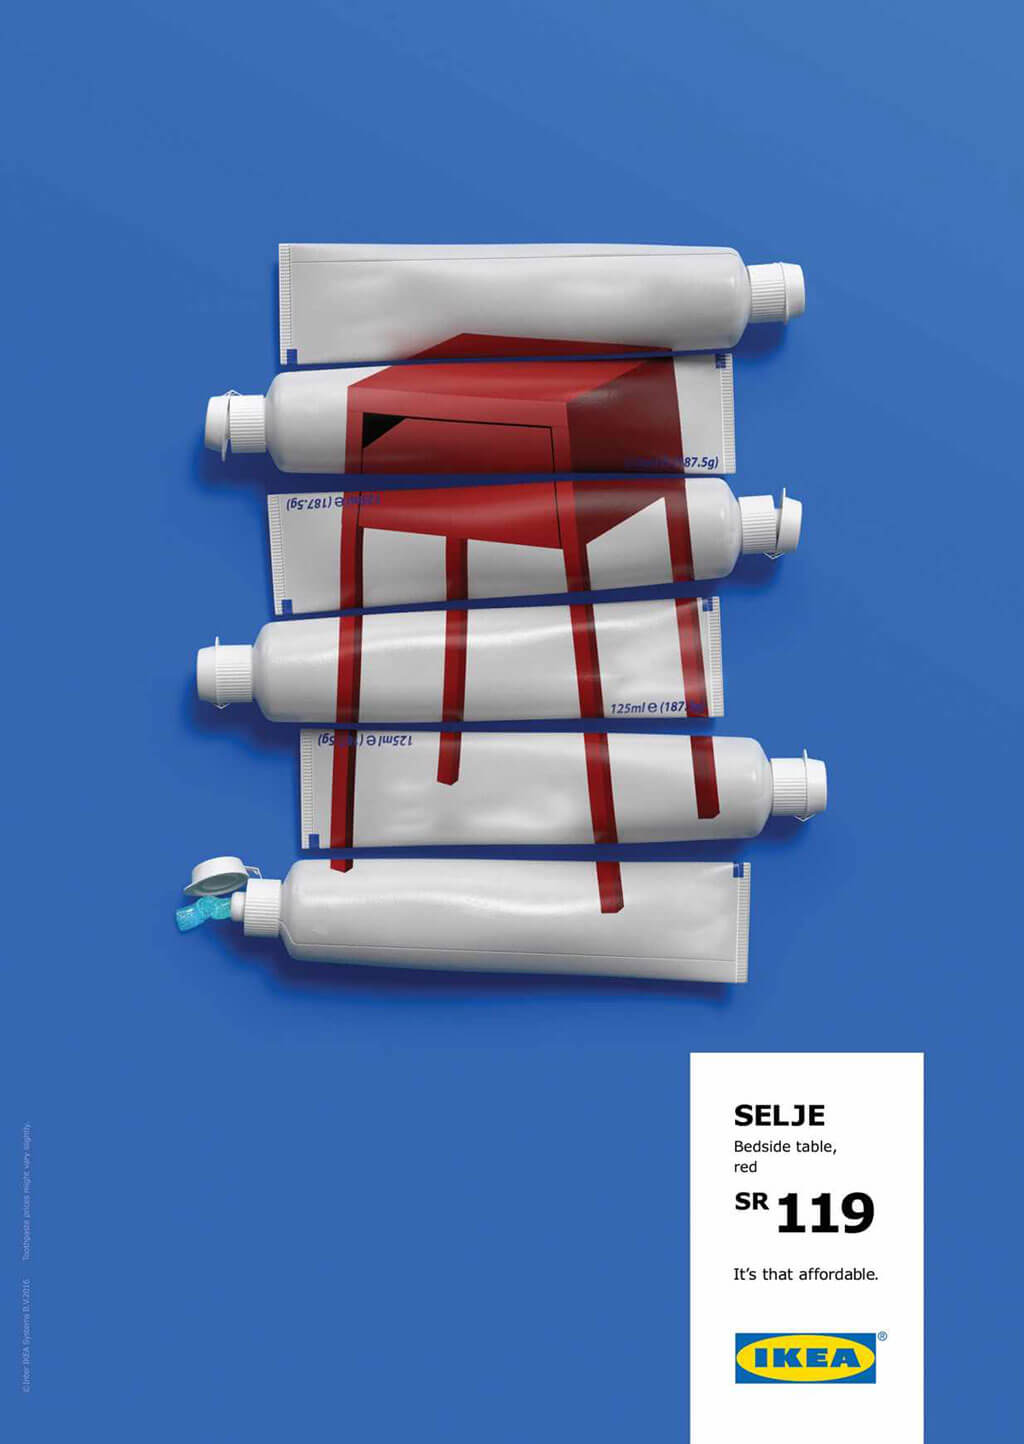 The affordability of IKEA's Selje